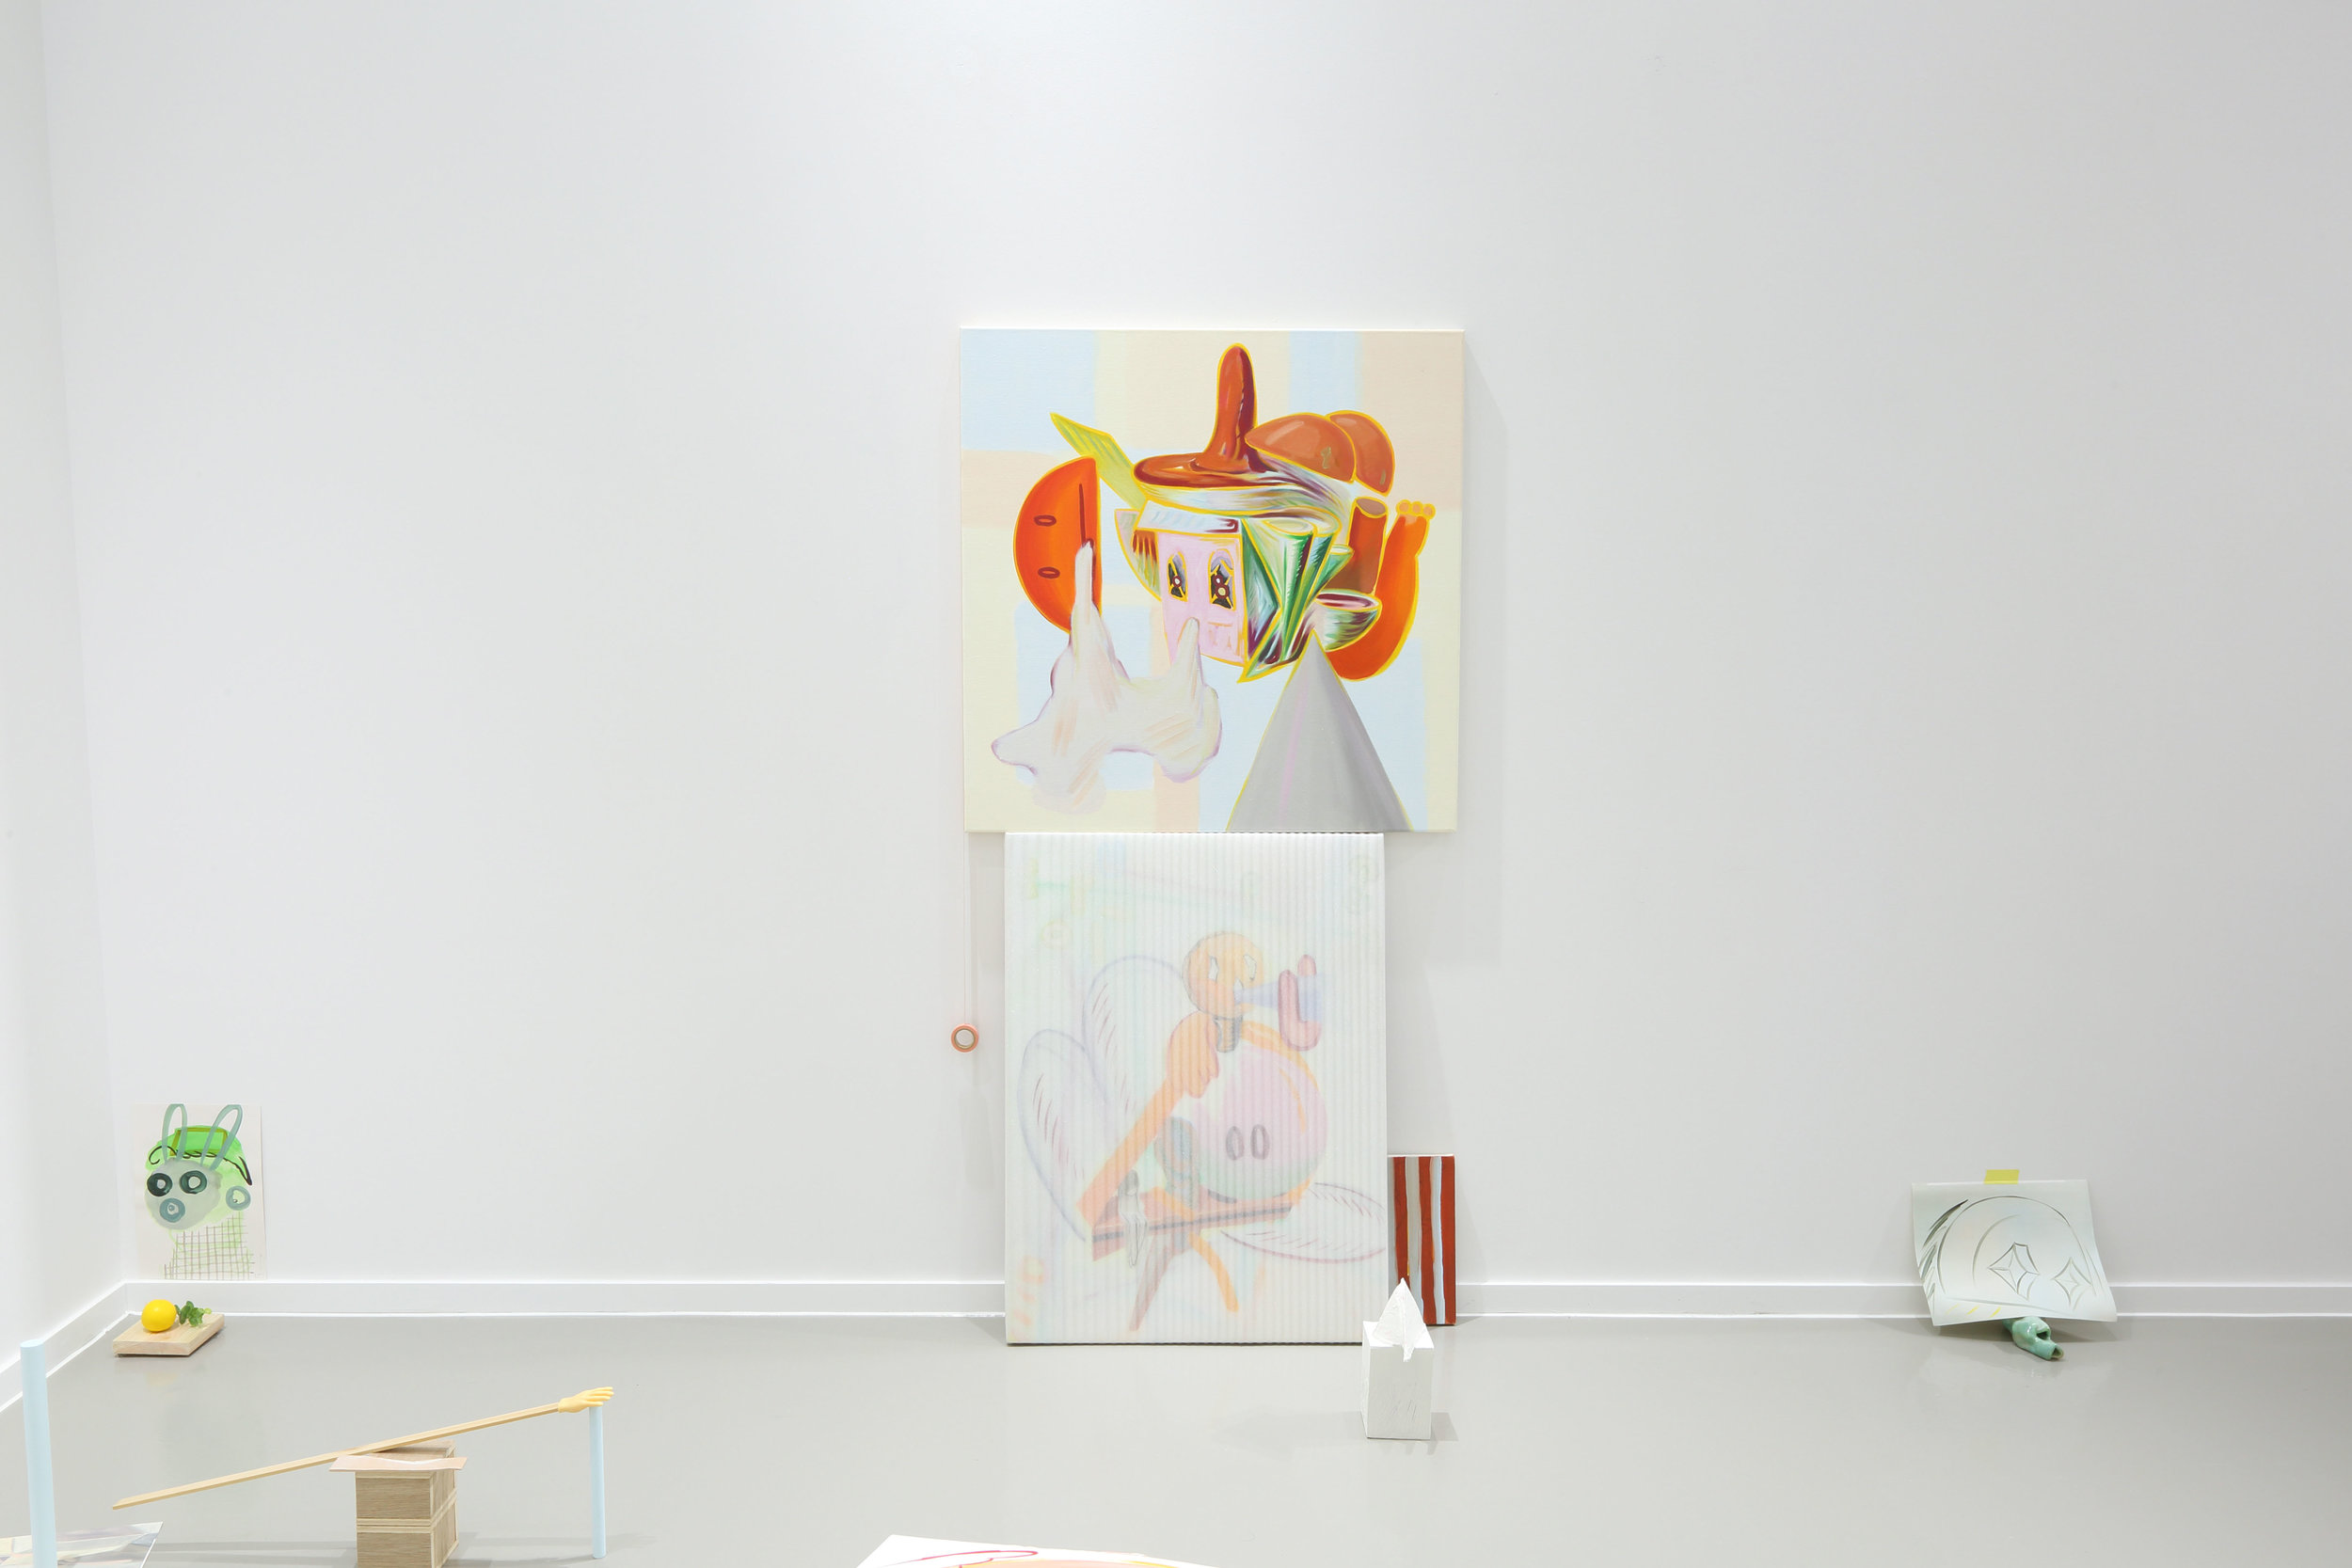 Pretty face    2019, Oil on canvas, wrapped painting, colored plaster on styrofoam, masking tape, Dimensions variable